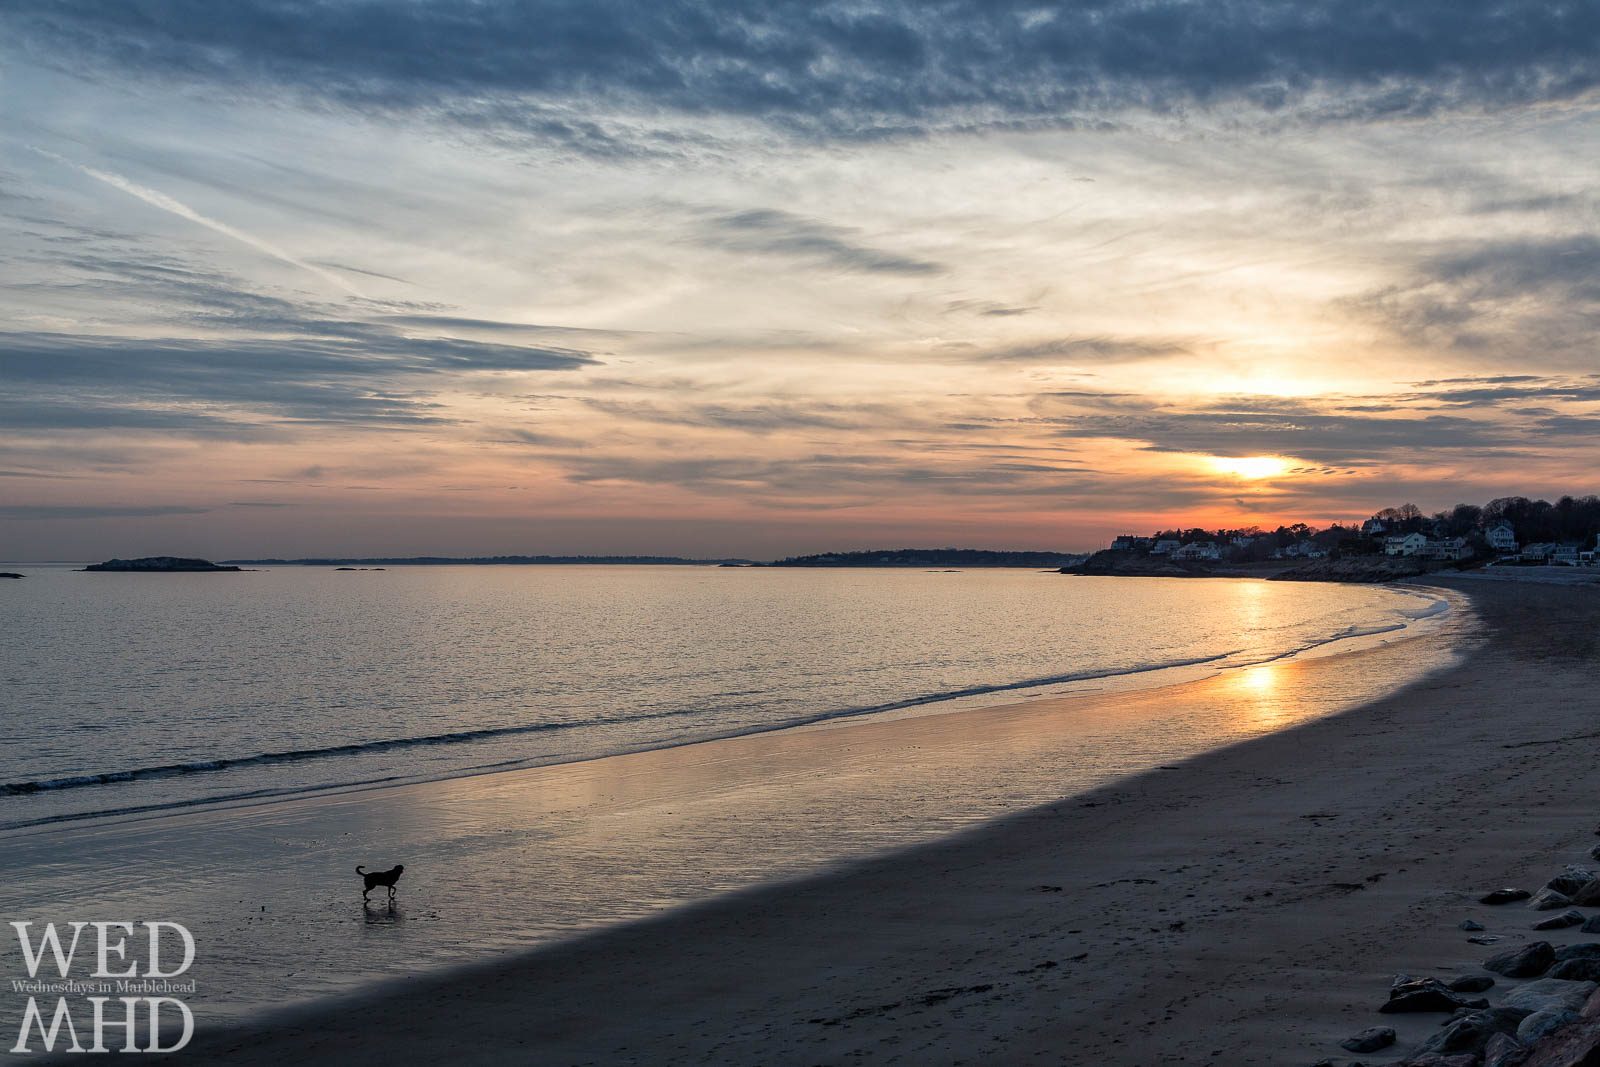 Lone dog walking along beach at sunset